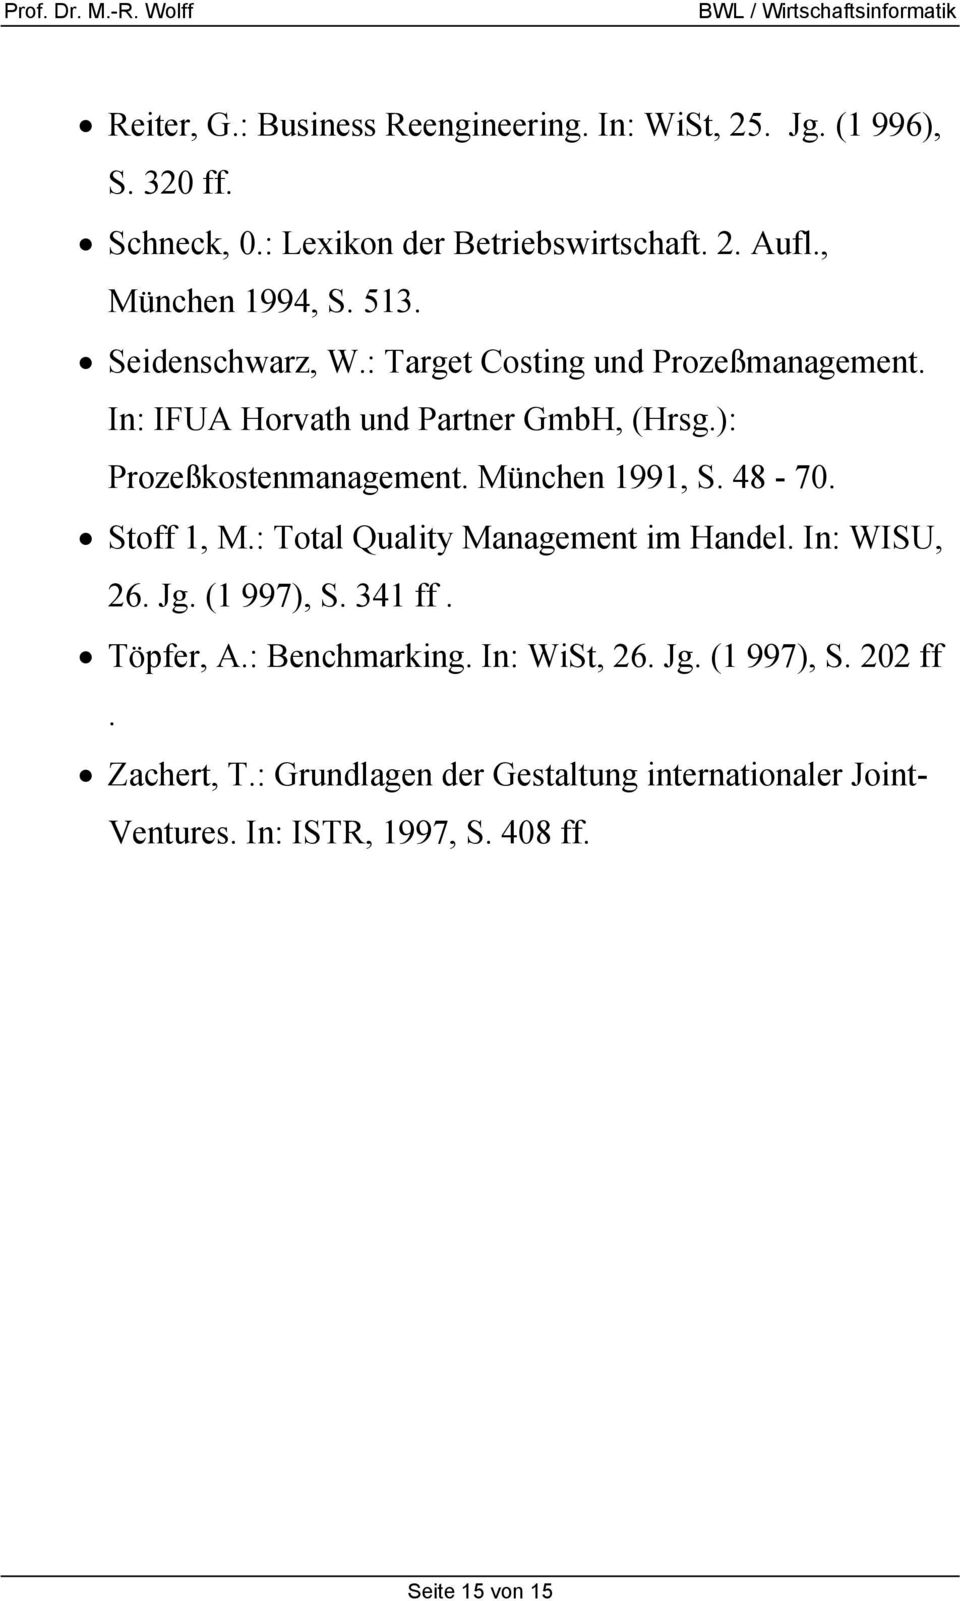 ): Prozeßkostenmanagement. München 1991, S. 48-70. Stoff 1, M.: Total Quality Management im Handel. In: WISU, 26. Jg. (1 997), S. 341 ff.